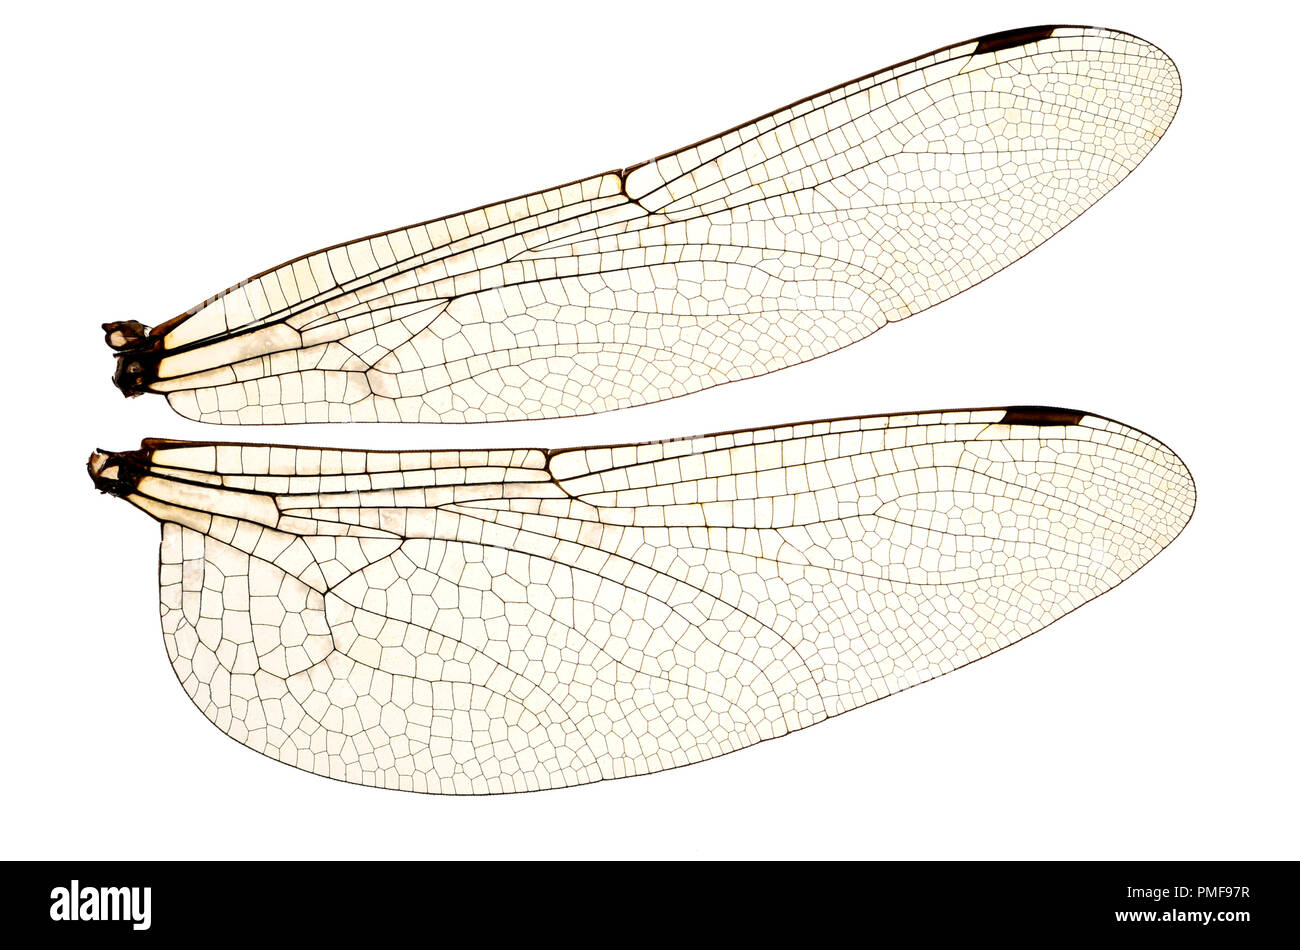 Wings of the Common Darter Dragonfly (Sympetrum striolatum) from a dead specimen. Showing veins and transparent cells - Stock Image